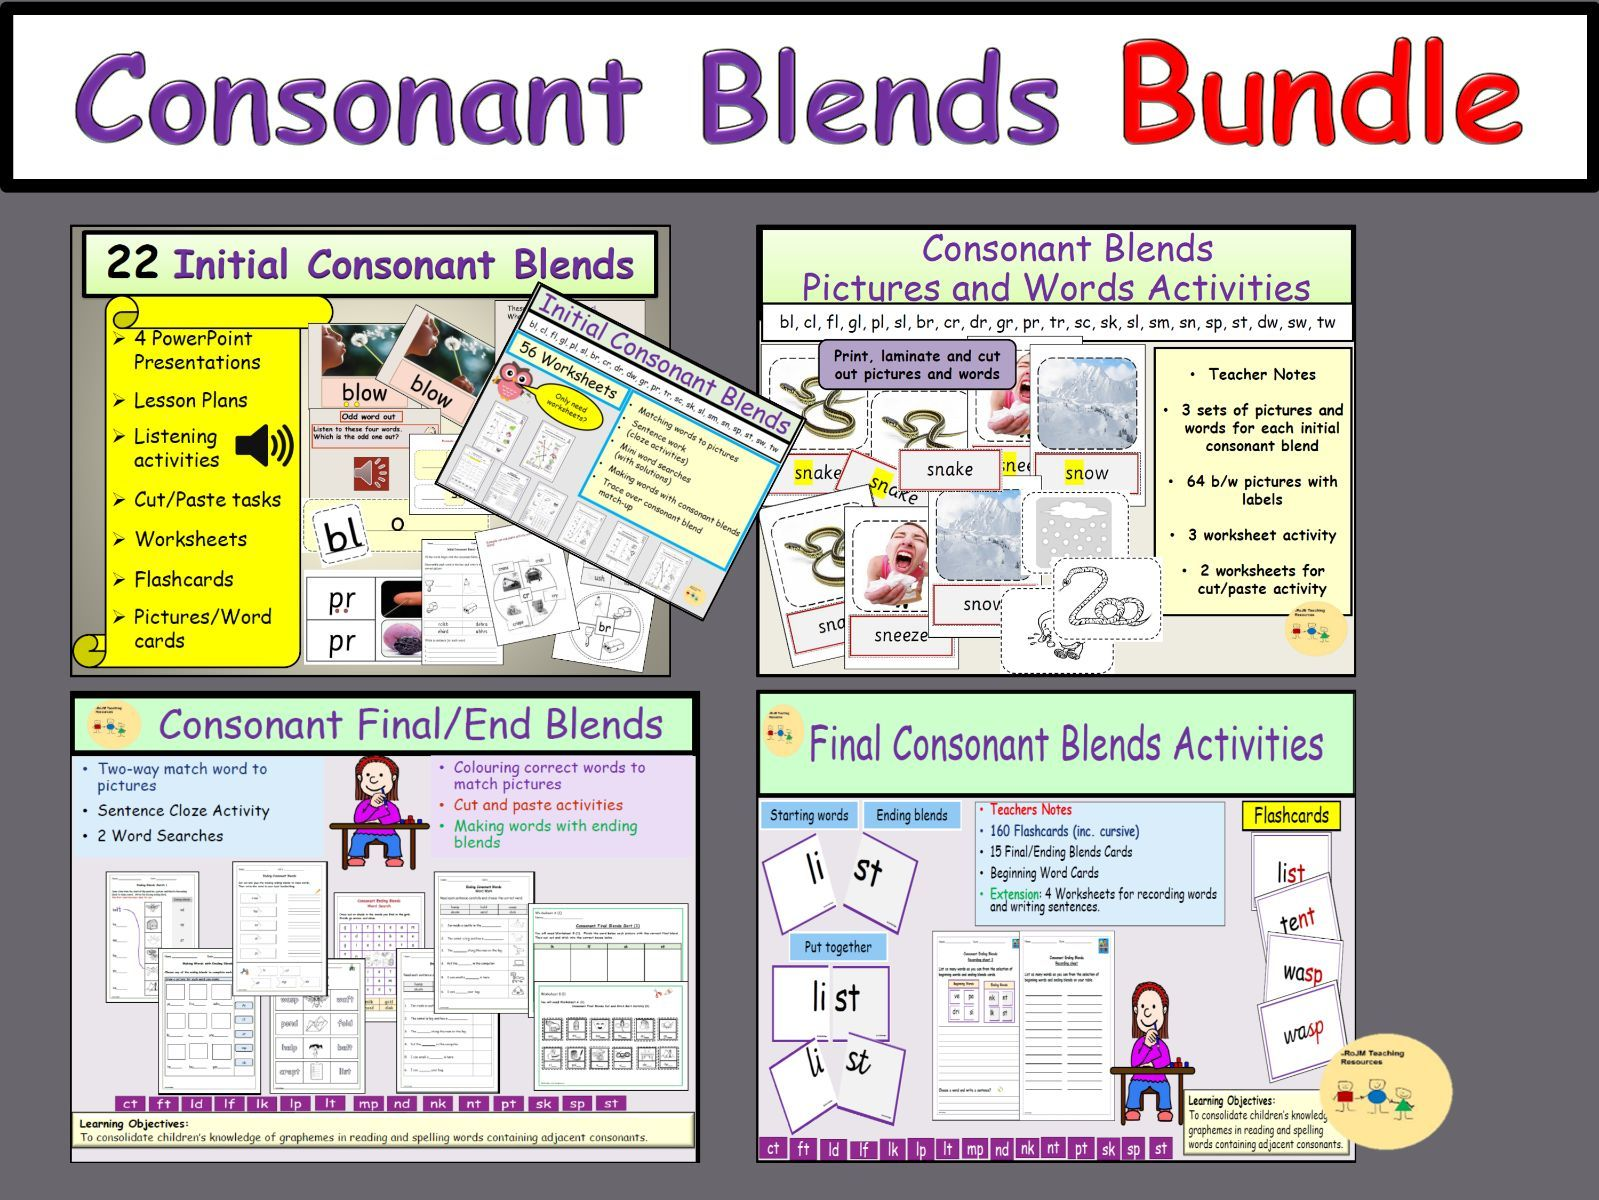 Consonant Blends Bundle